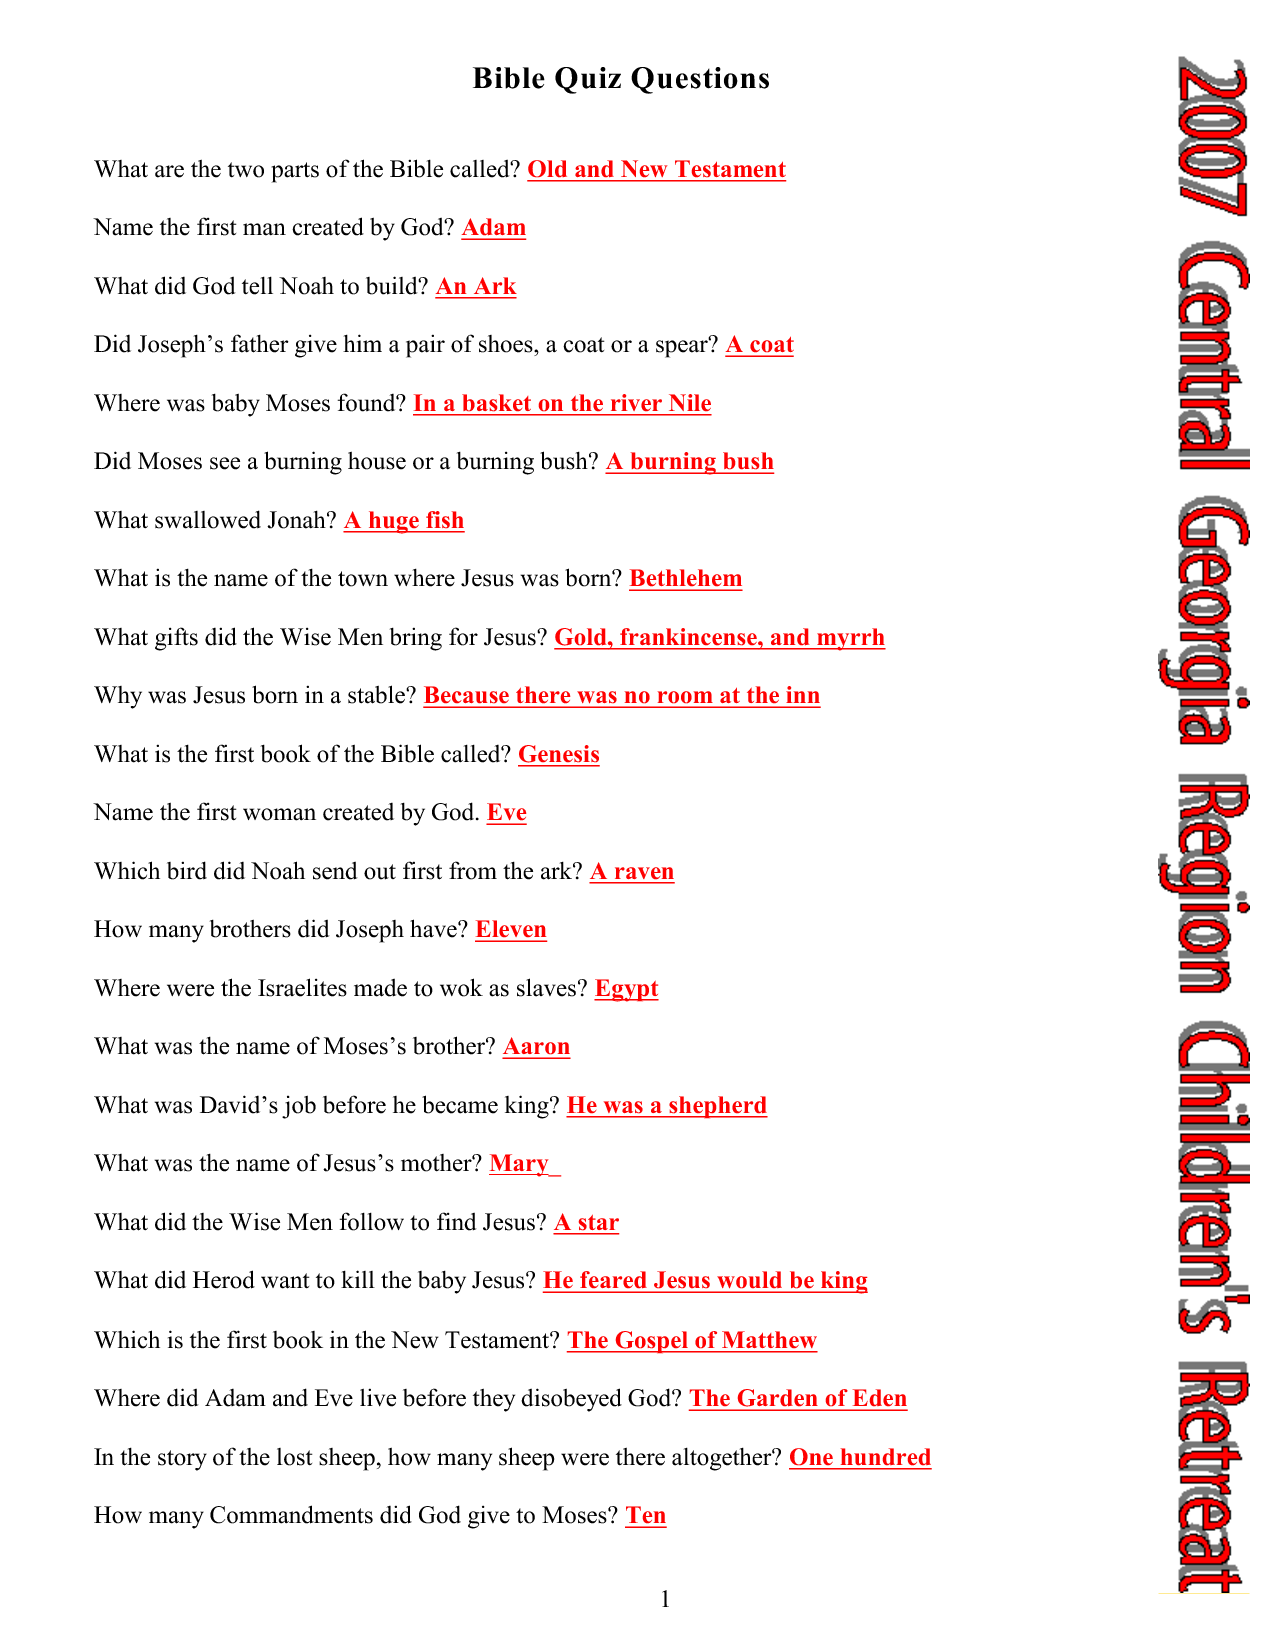 Bible Quiz Questions and Answers Bible Quiz Bible Study